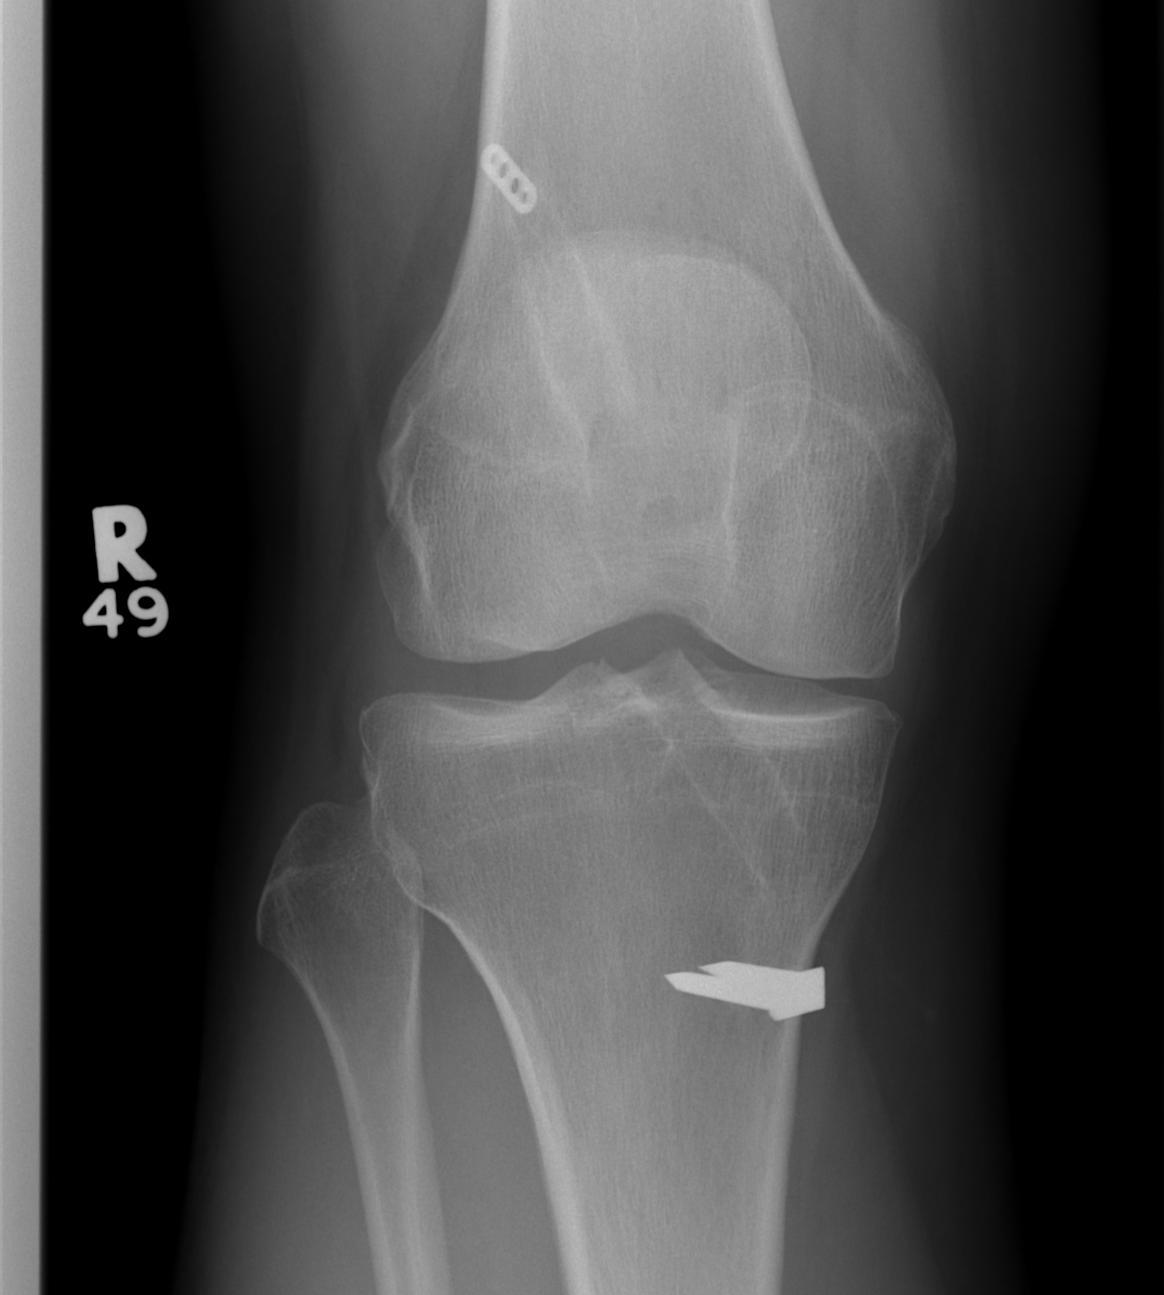 Revision ACL Pre AP Xray